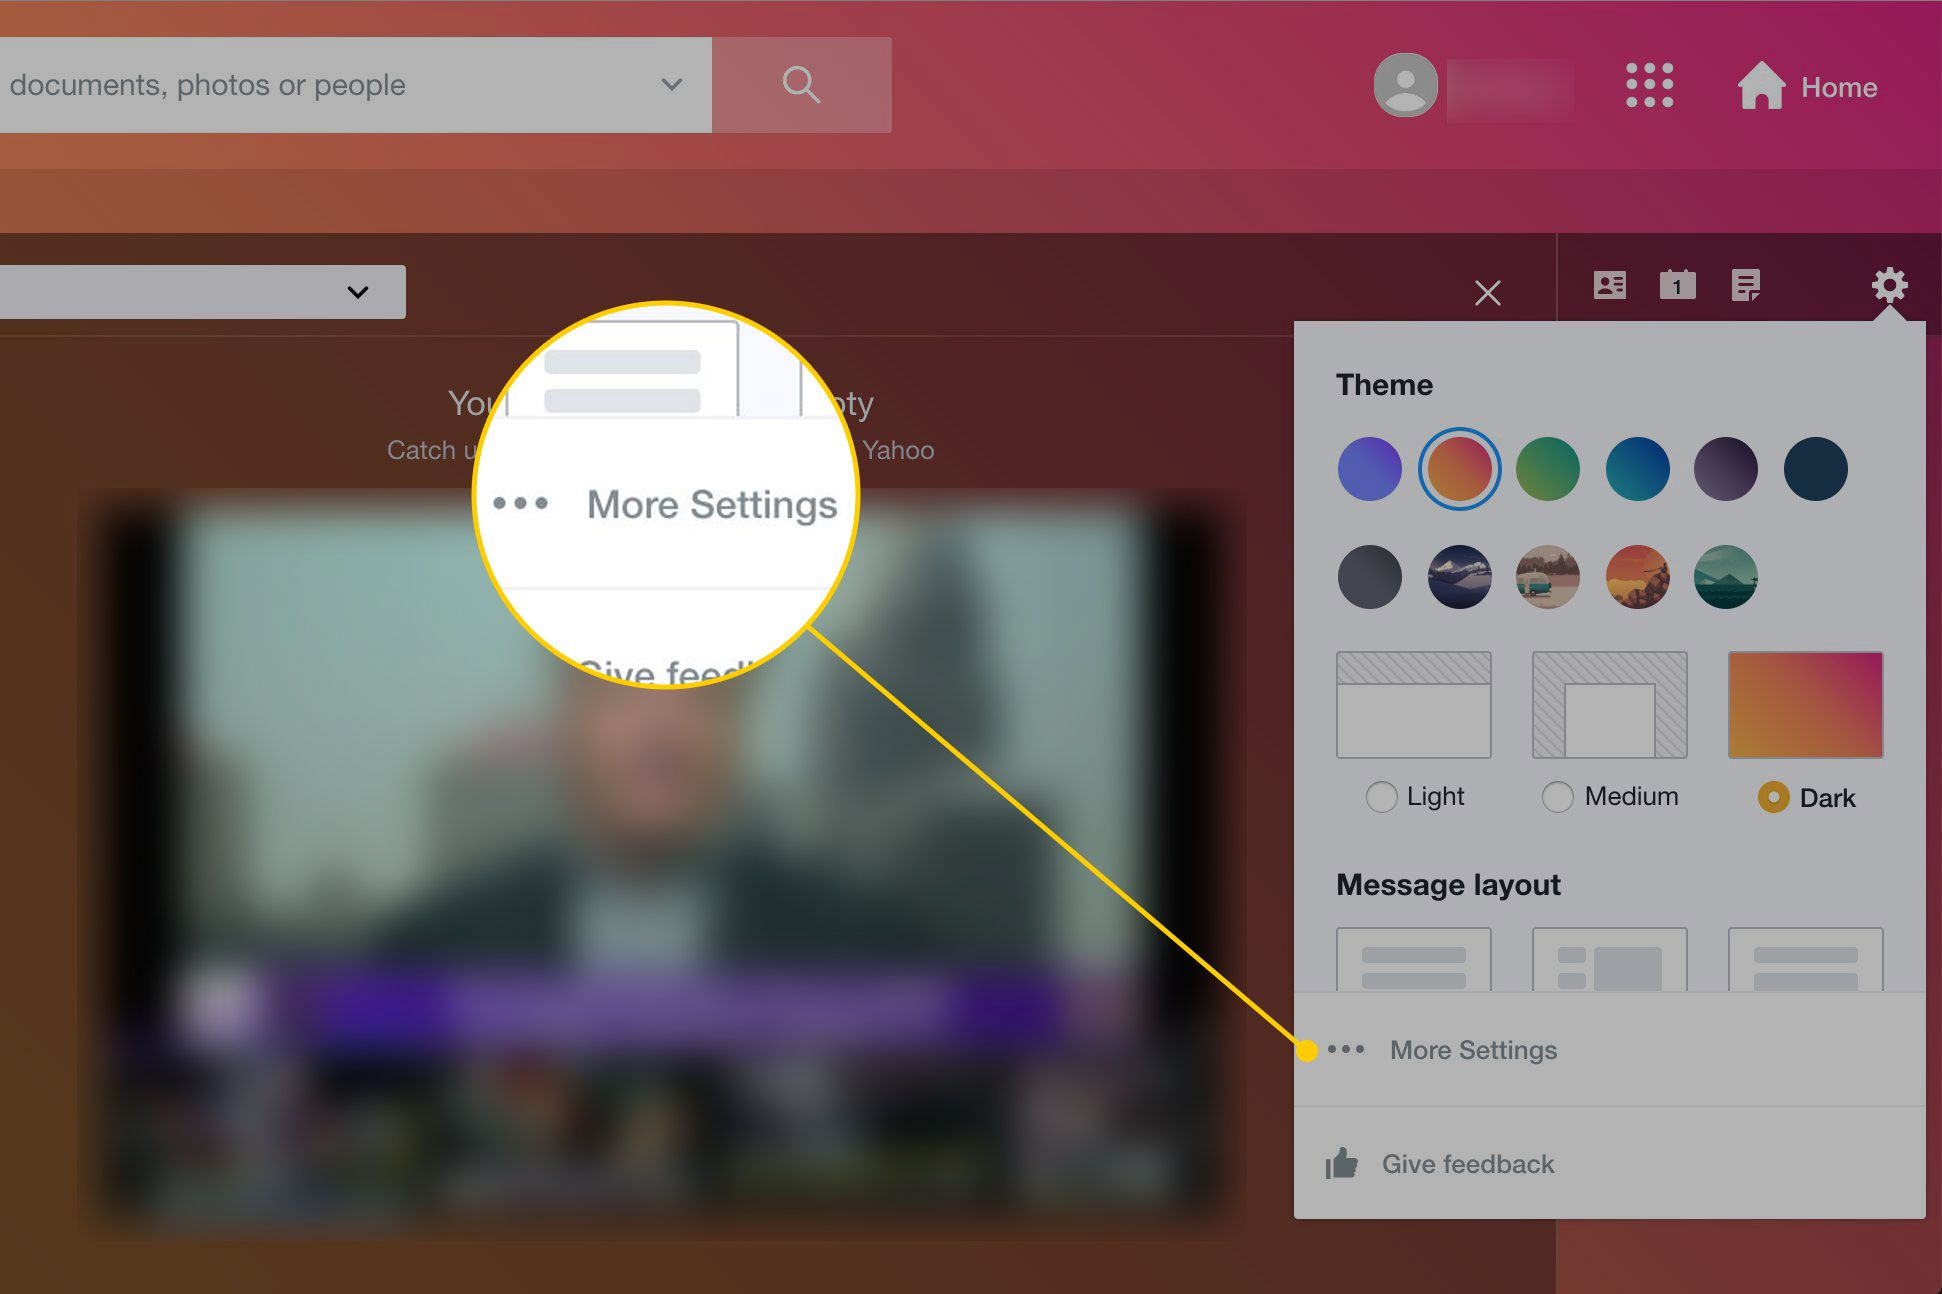 Yahoo Mail Inbox with the More Settings icon highlighted